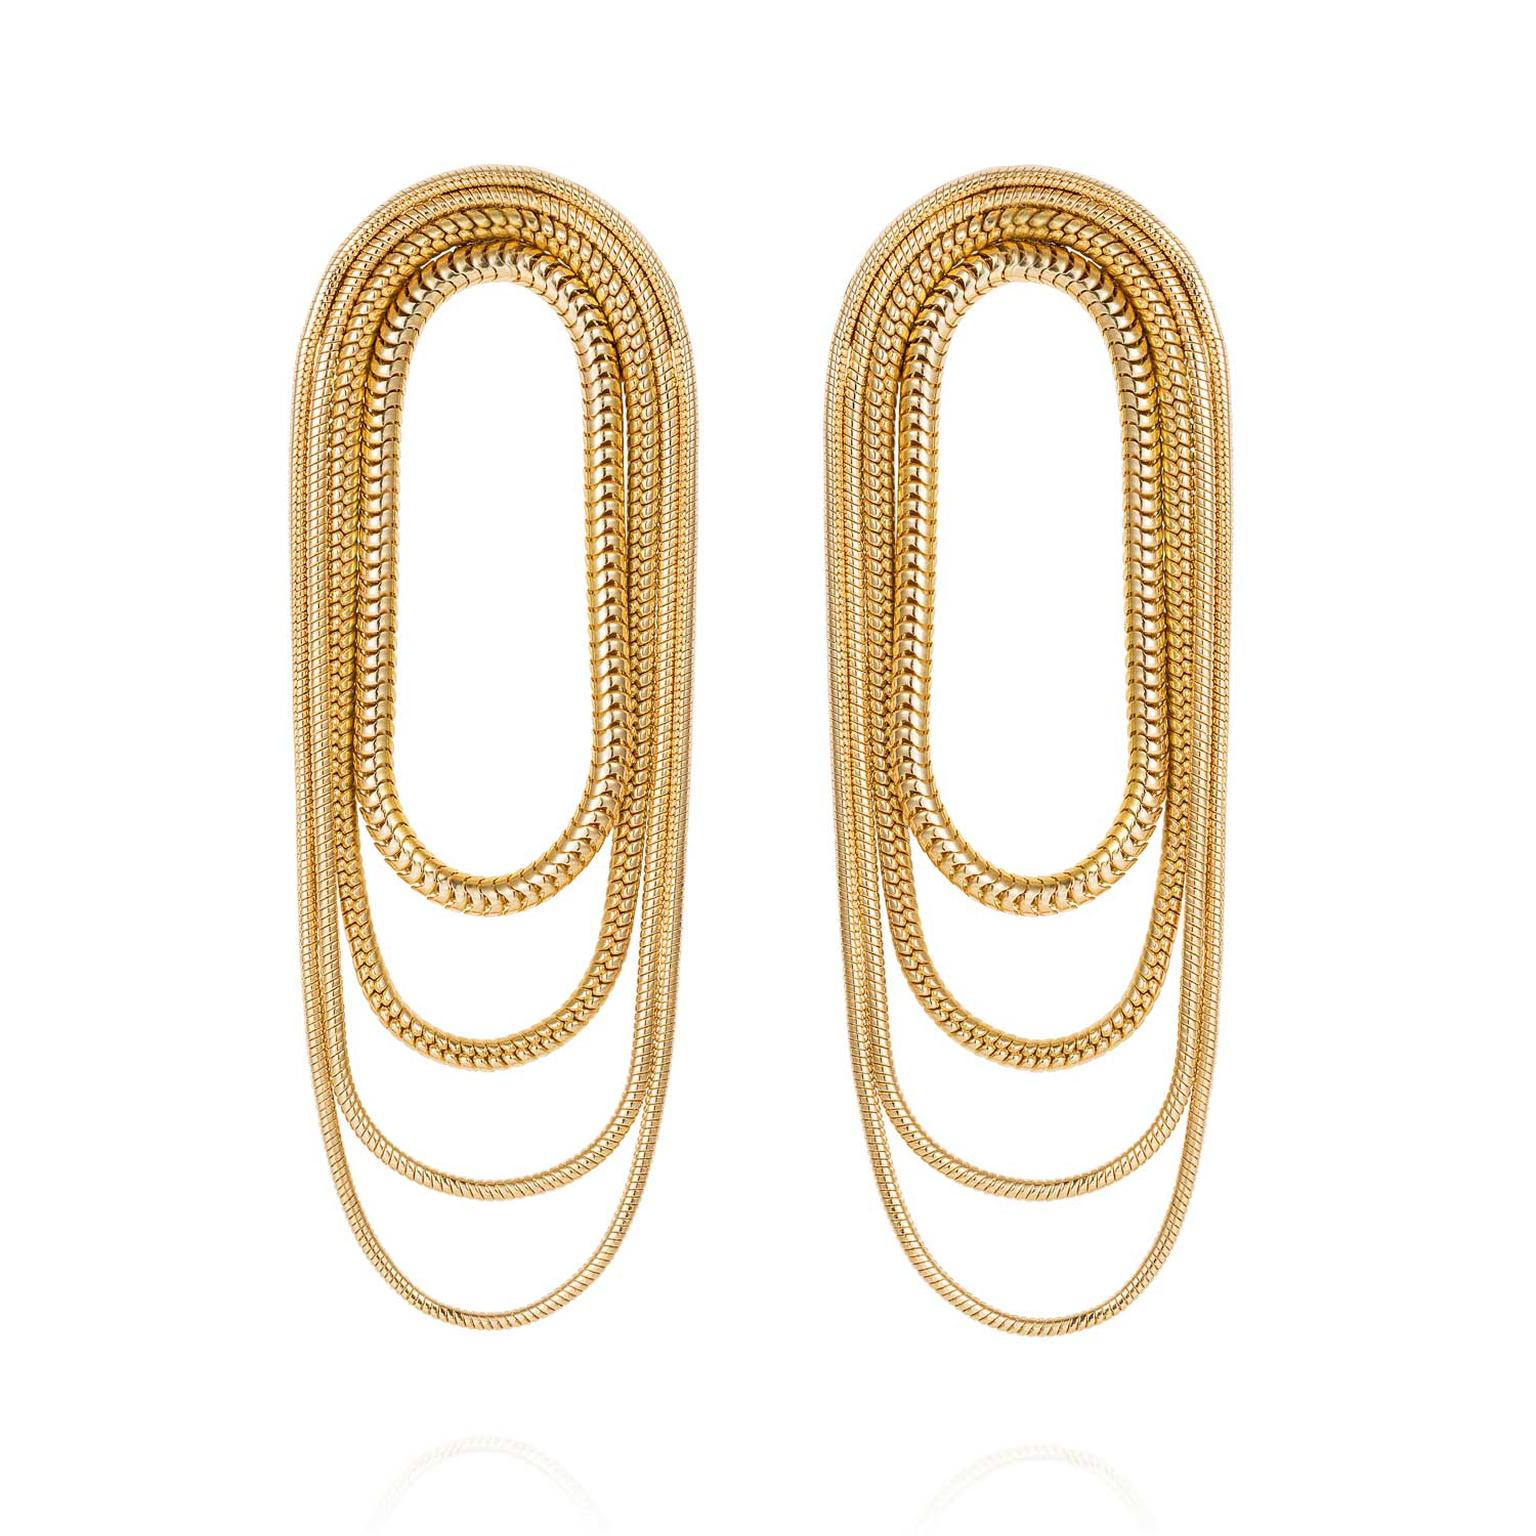 Fernando Jorge Parallel Multi-Chain earrings